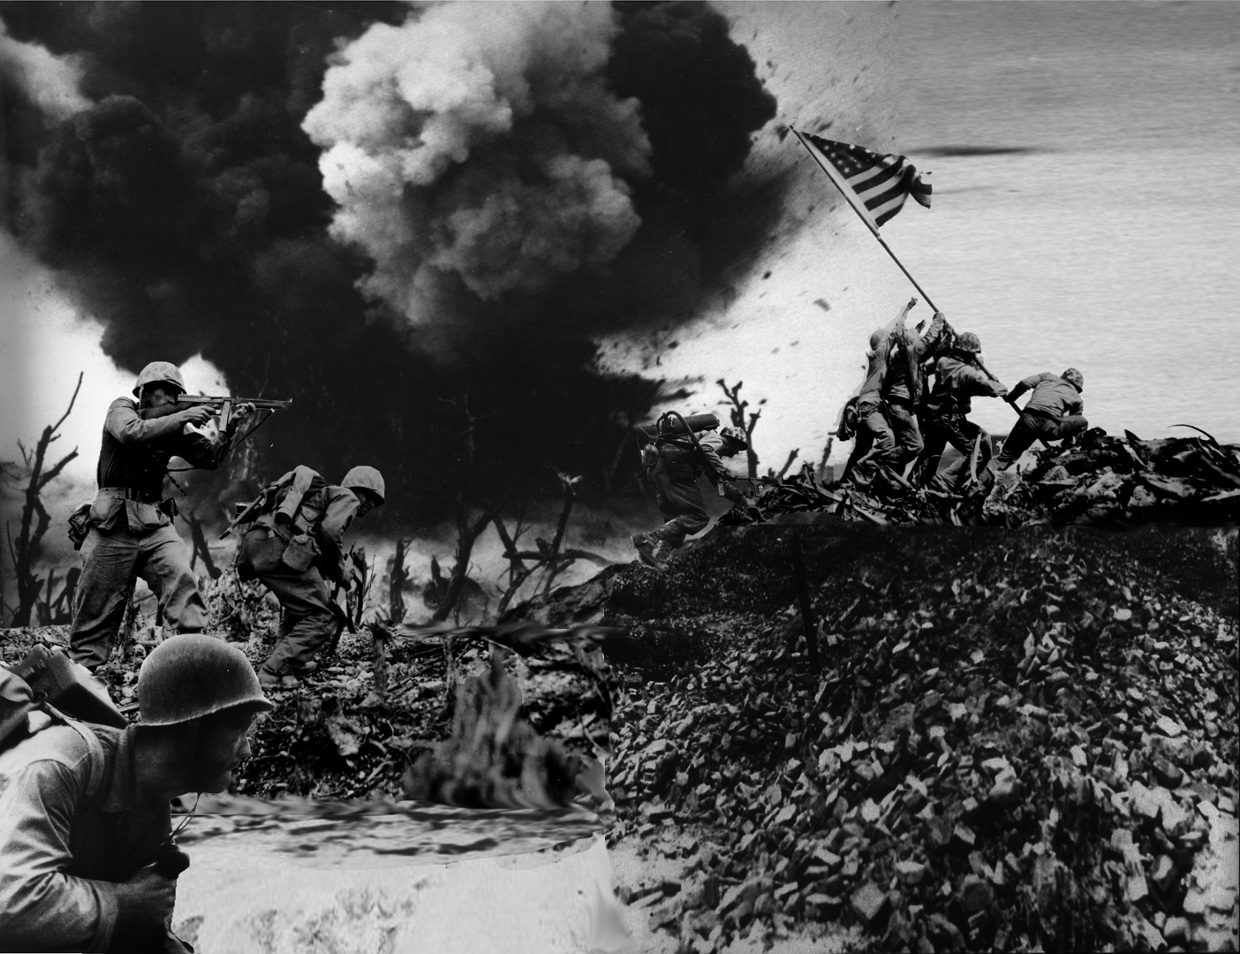 battle of iwo jima After the battle, both fleet adm ernest j king and general of the army george c marshall continued to maintain that iwo jima provided essential fighter cover for superforts, but they began shifting emphasis to the b-29 landings on iwo jima.